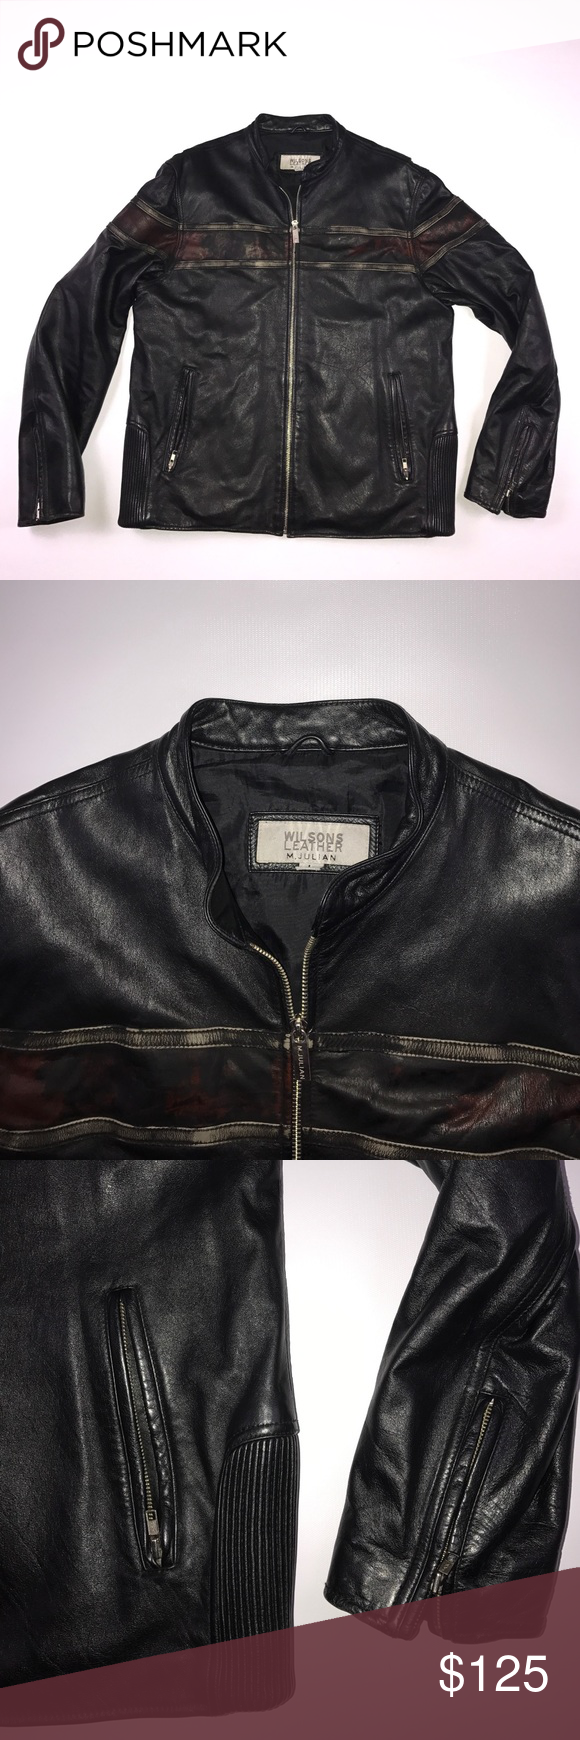 Large Wilsons Leather M Julian Motorcycle Jacket Small